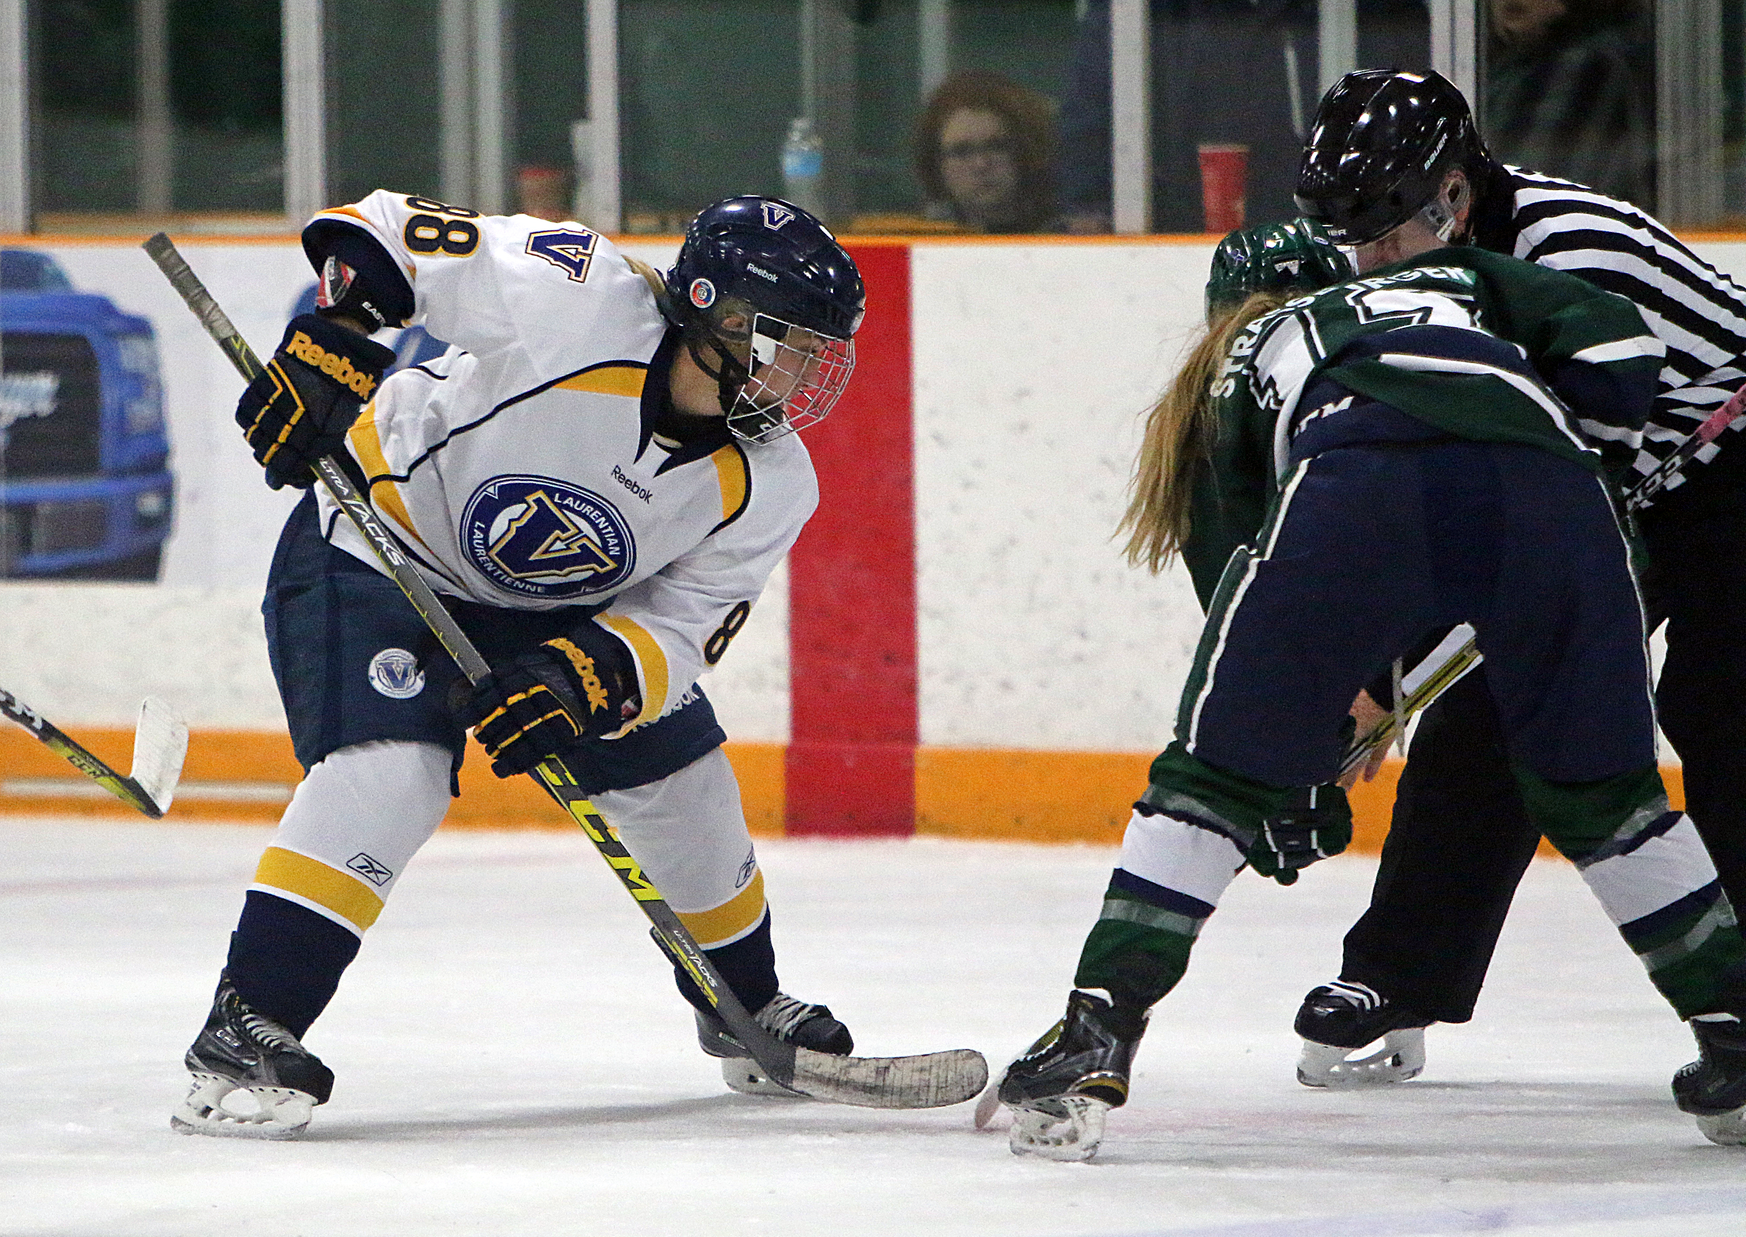 WHKY | Voyageurs Shutout by #8 Gryphons